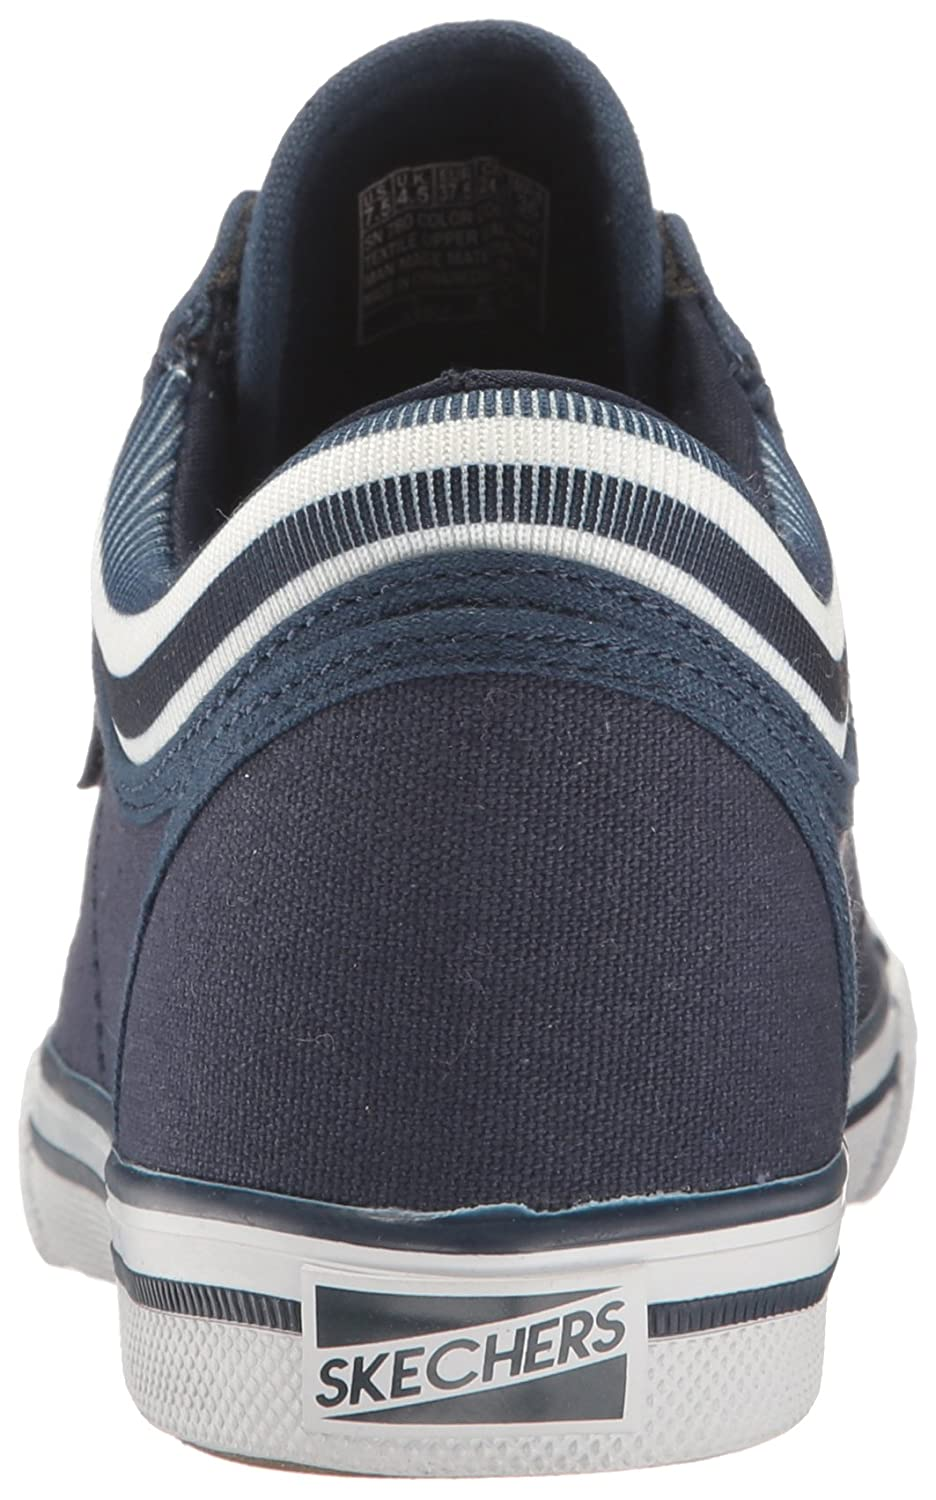 Skechers Street Women's Utopia Fashion US|Navy Sneaker B01MROQ52E 9.5 B(M) US|Navy Fashion 493b57